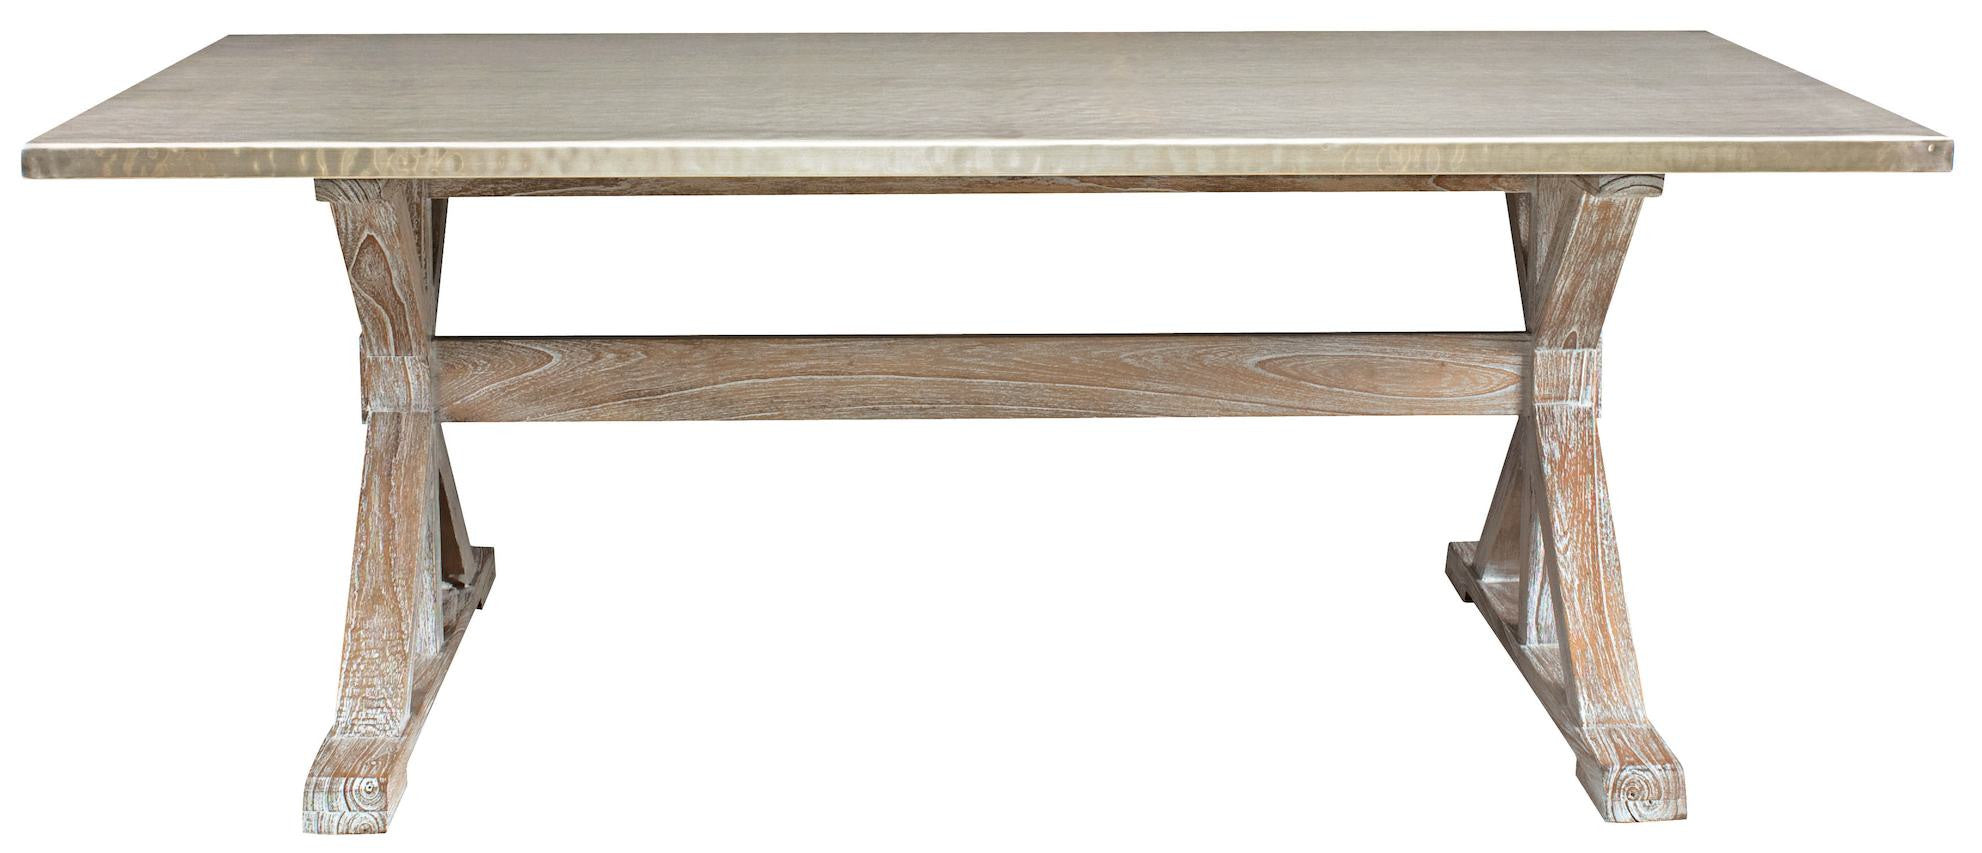 Metal Top Dining Tables Taran Dining Table With A Hammered Metal Top Mortise Tenon